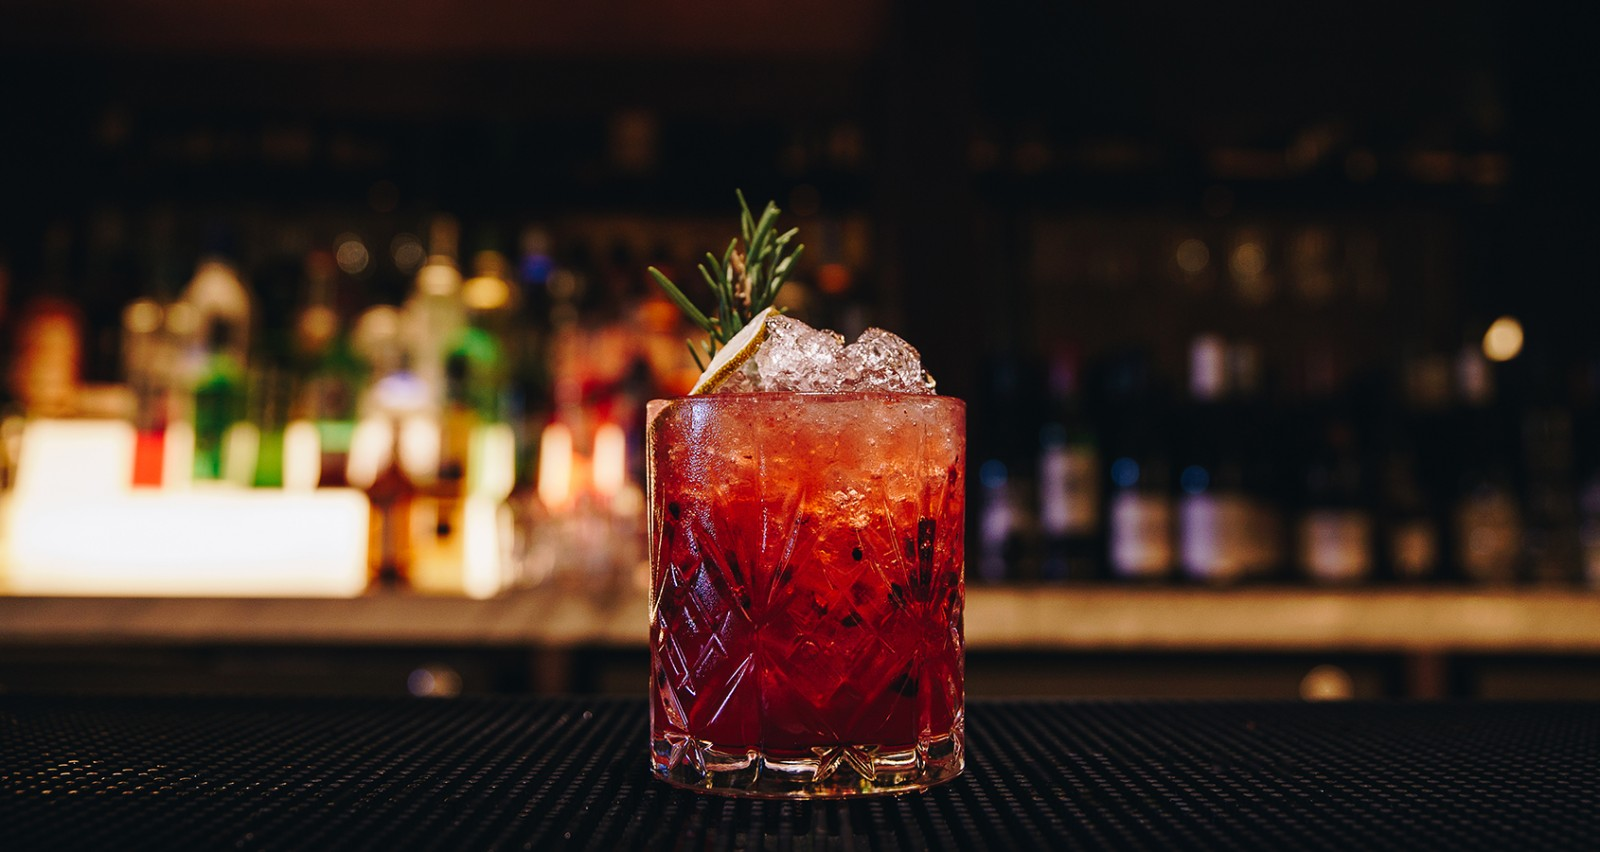 Blackberry and Rosemary Fizz